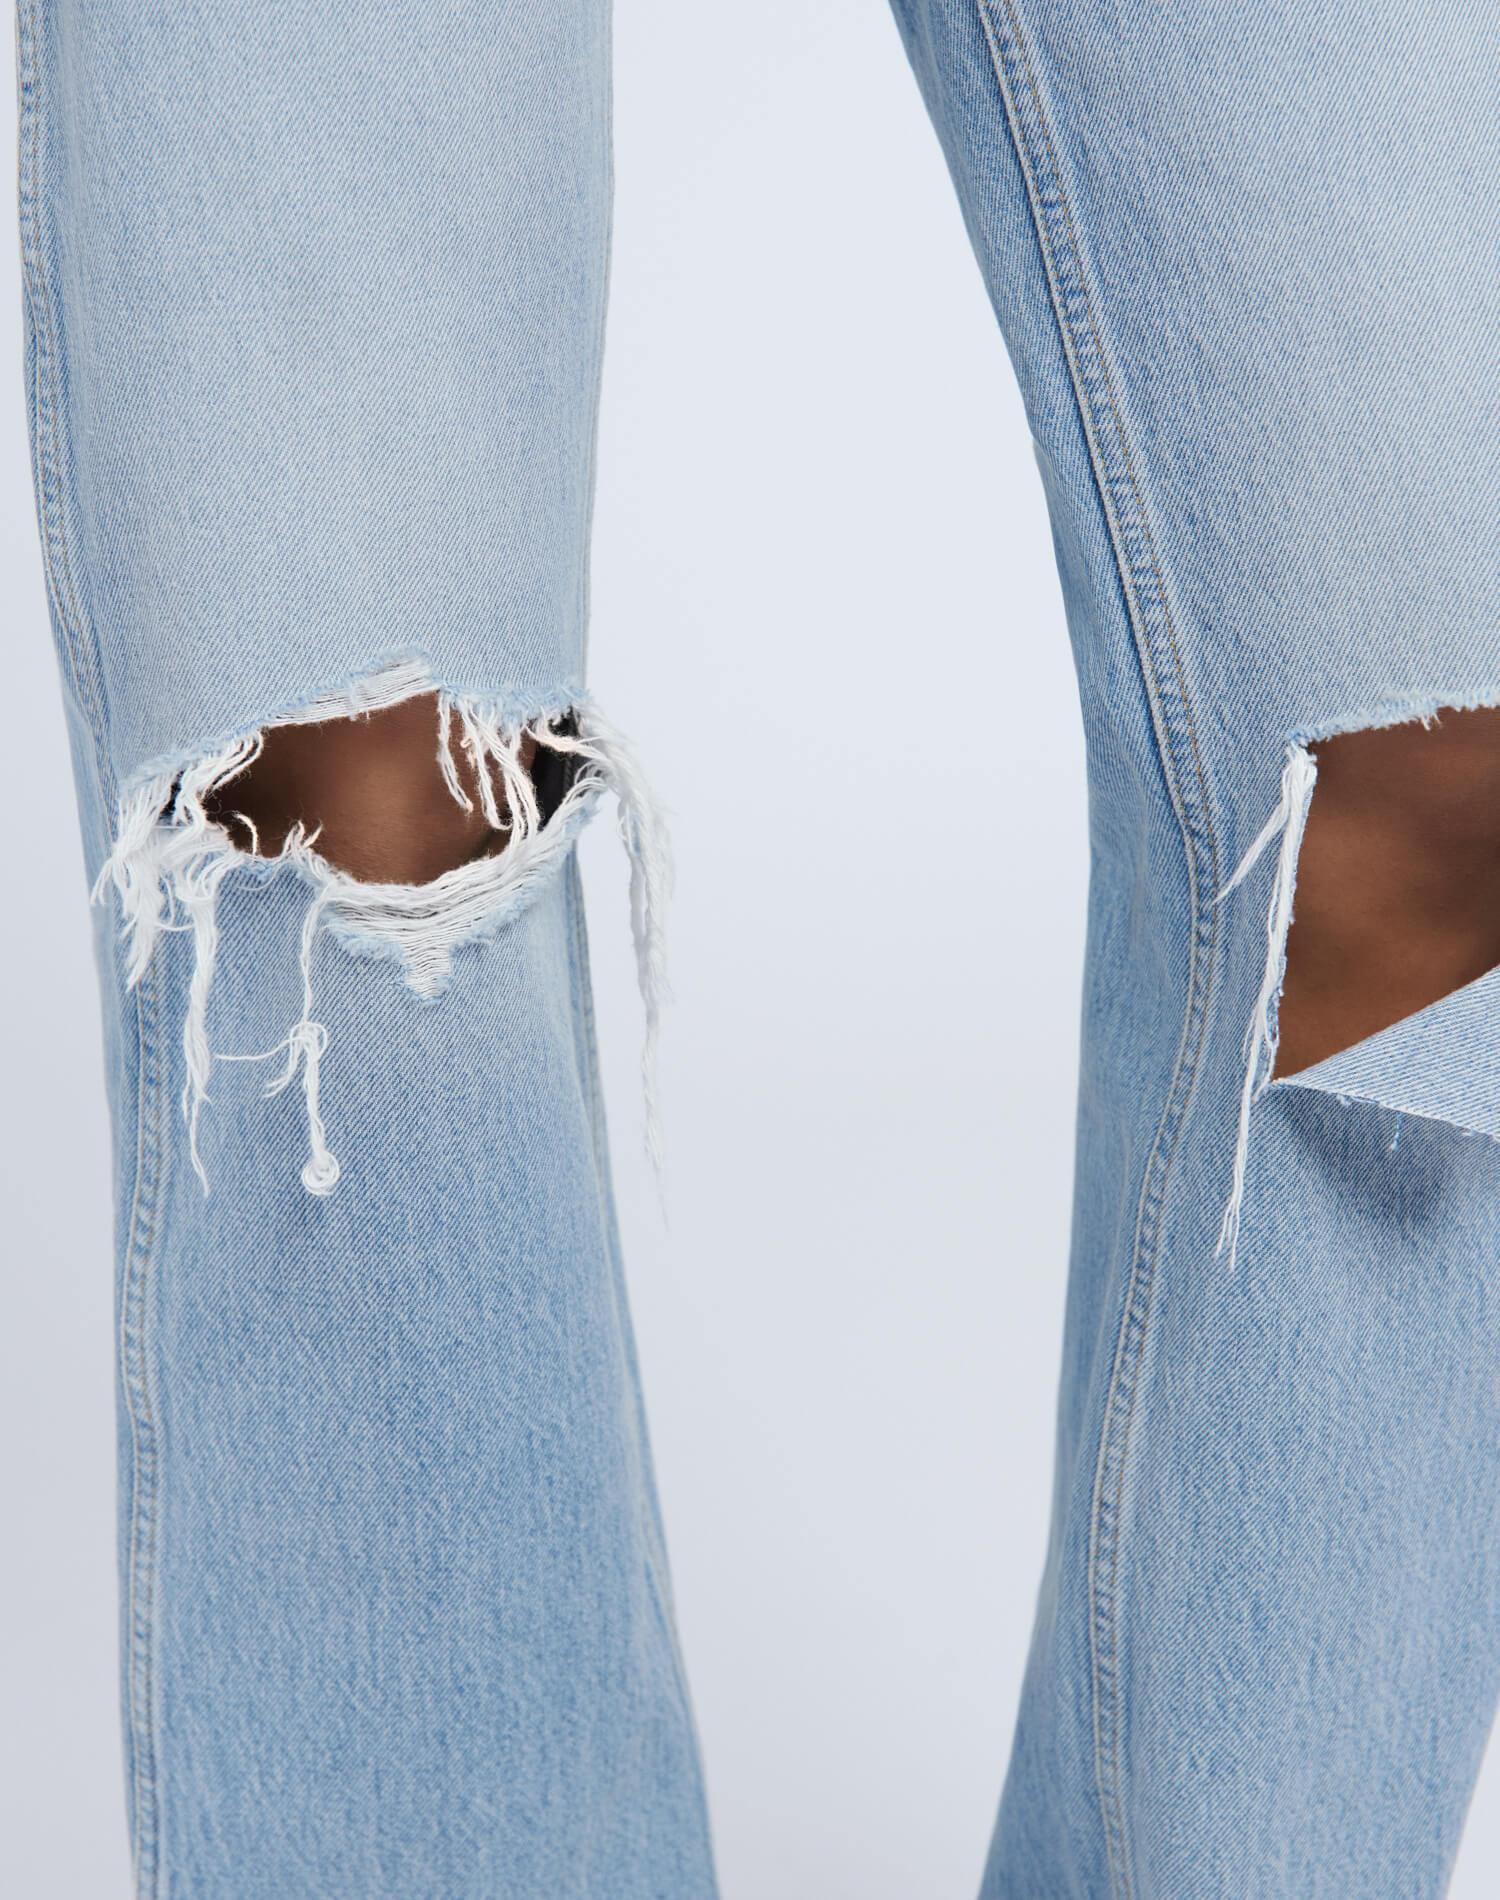 High Rise Loose - Breezy Indigo with Rips 3